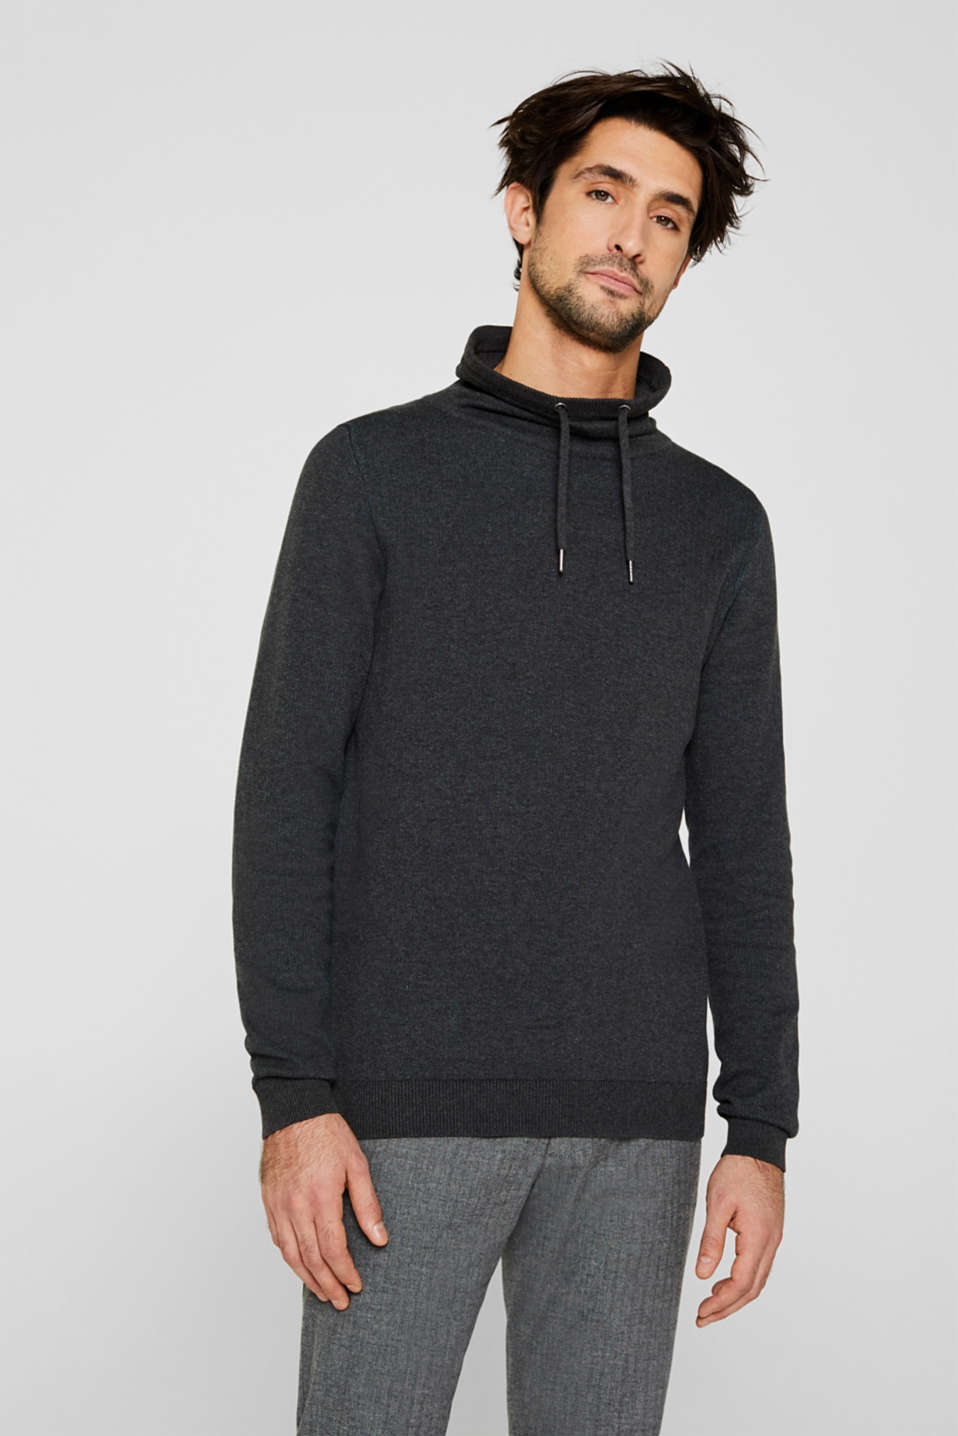 Sweatshirt with a drawstring collar, 100% cotton, ANTHRACITE 5, detail image number 0